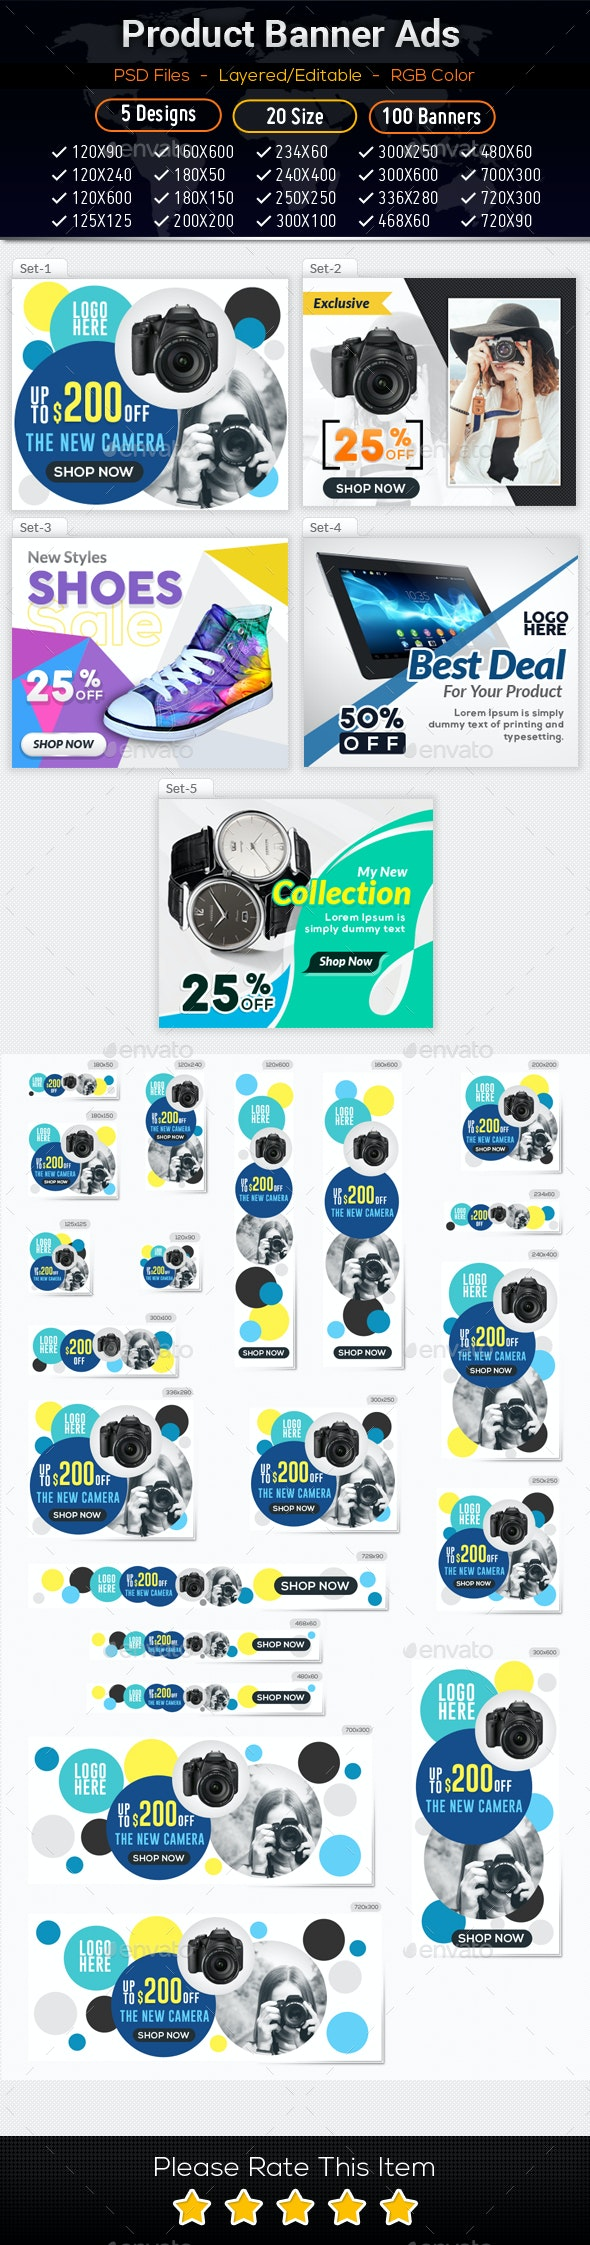 Product Ad Banners 04 - Banners & Ads Web Elements